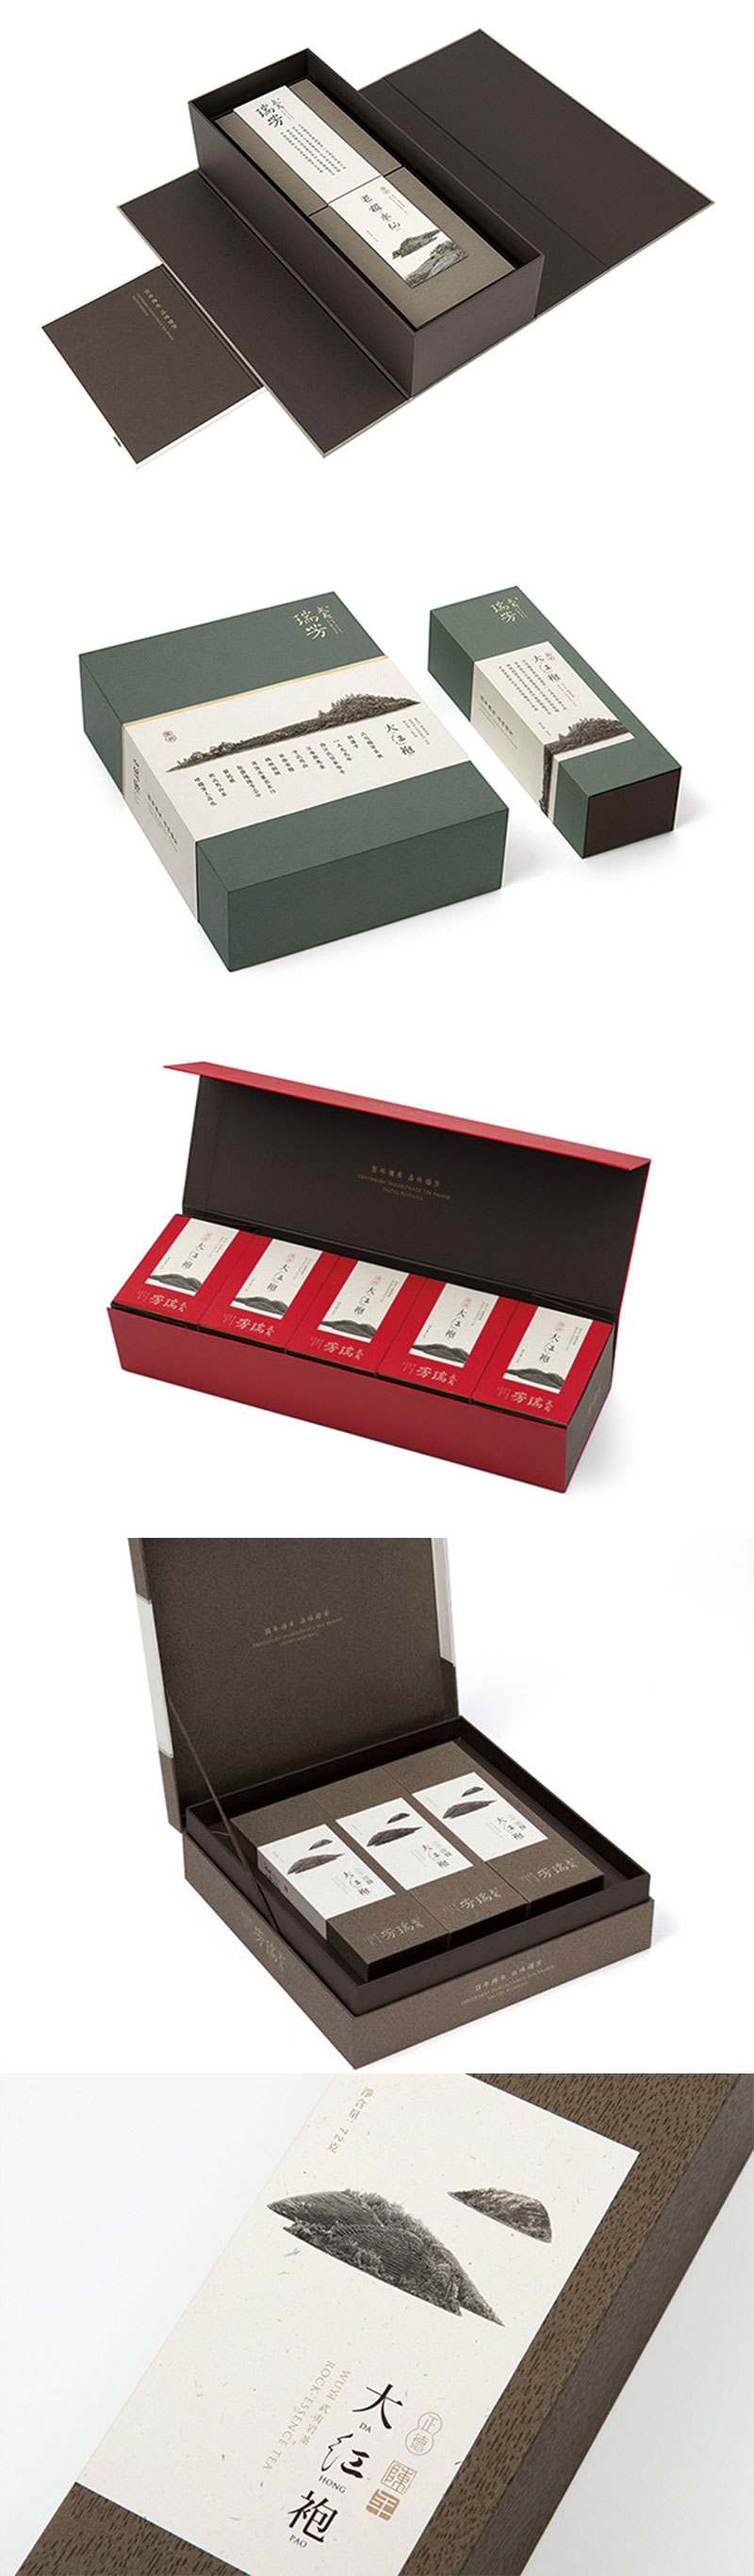 WUYI RUIFANG TEA by ONE & ONE DESIGN